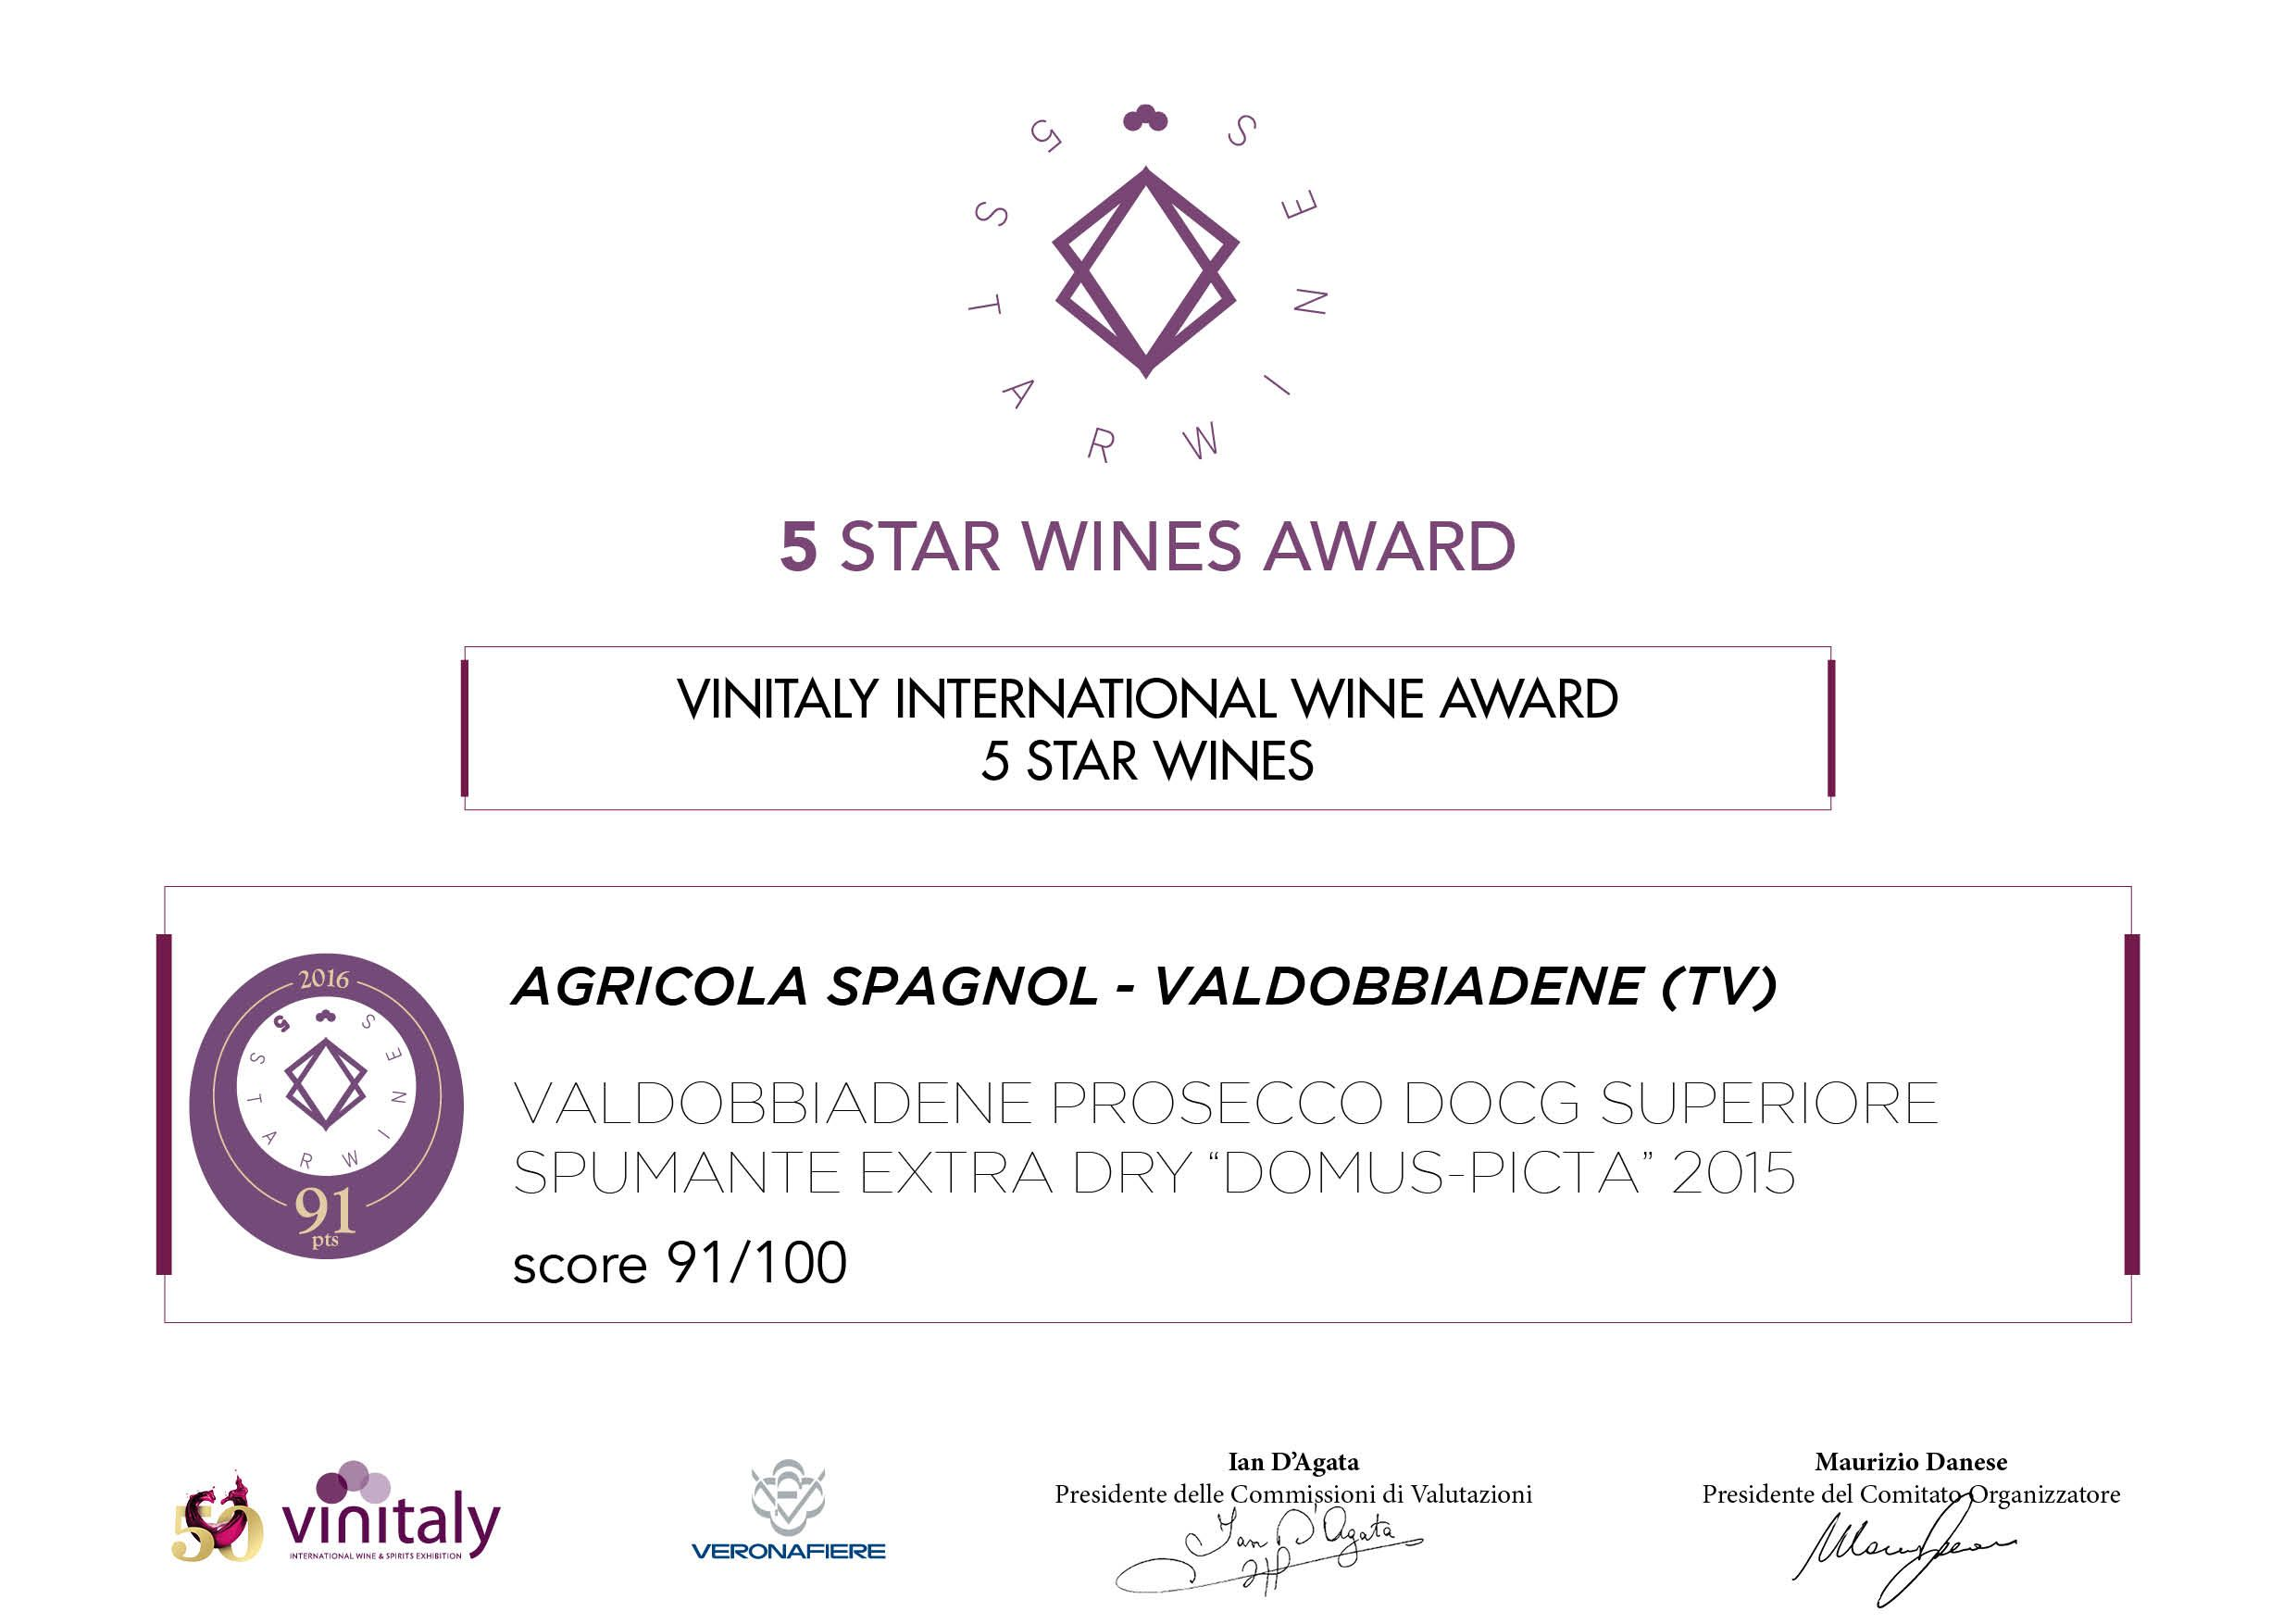 Vinitaly 5 Star Wines Award